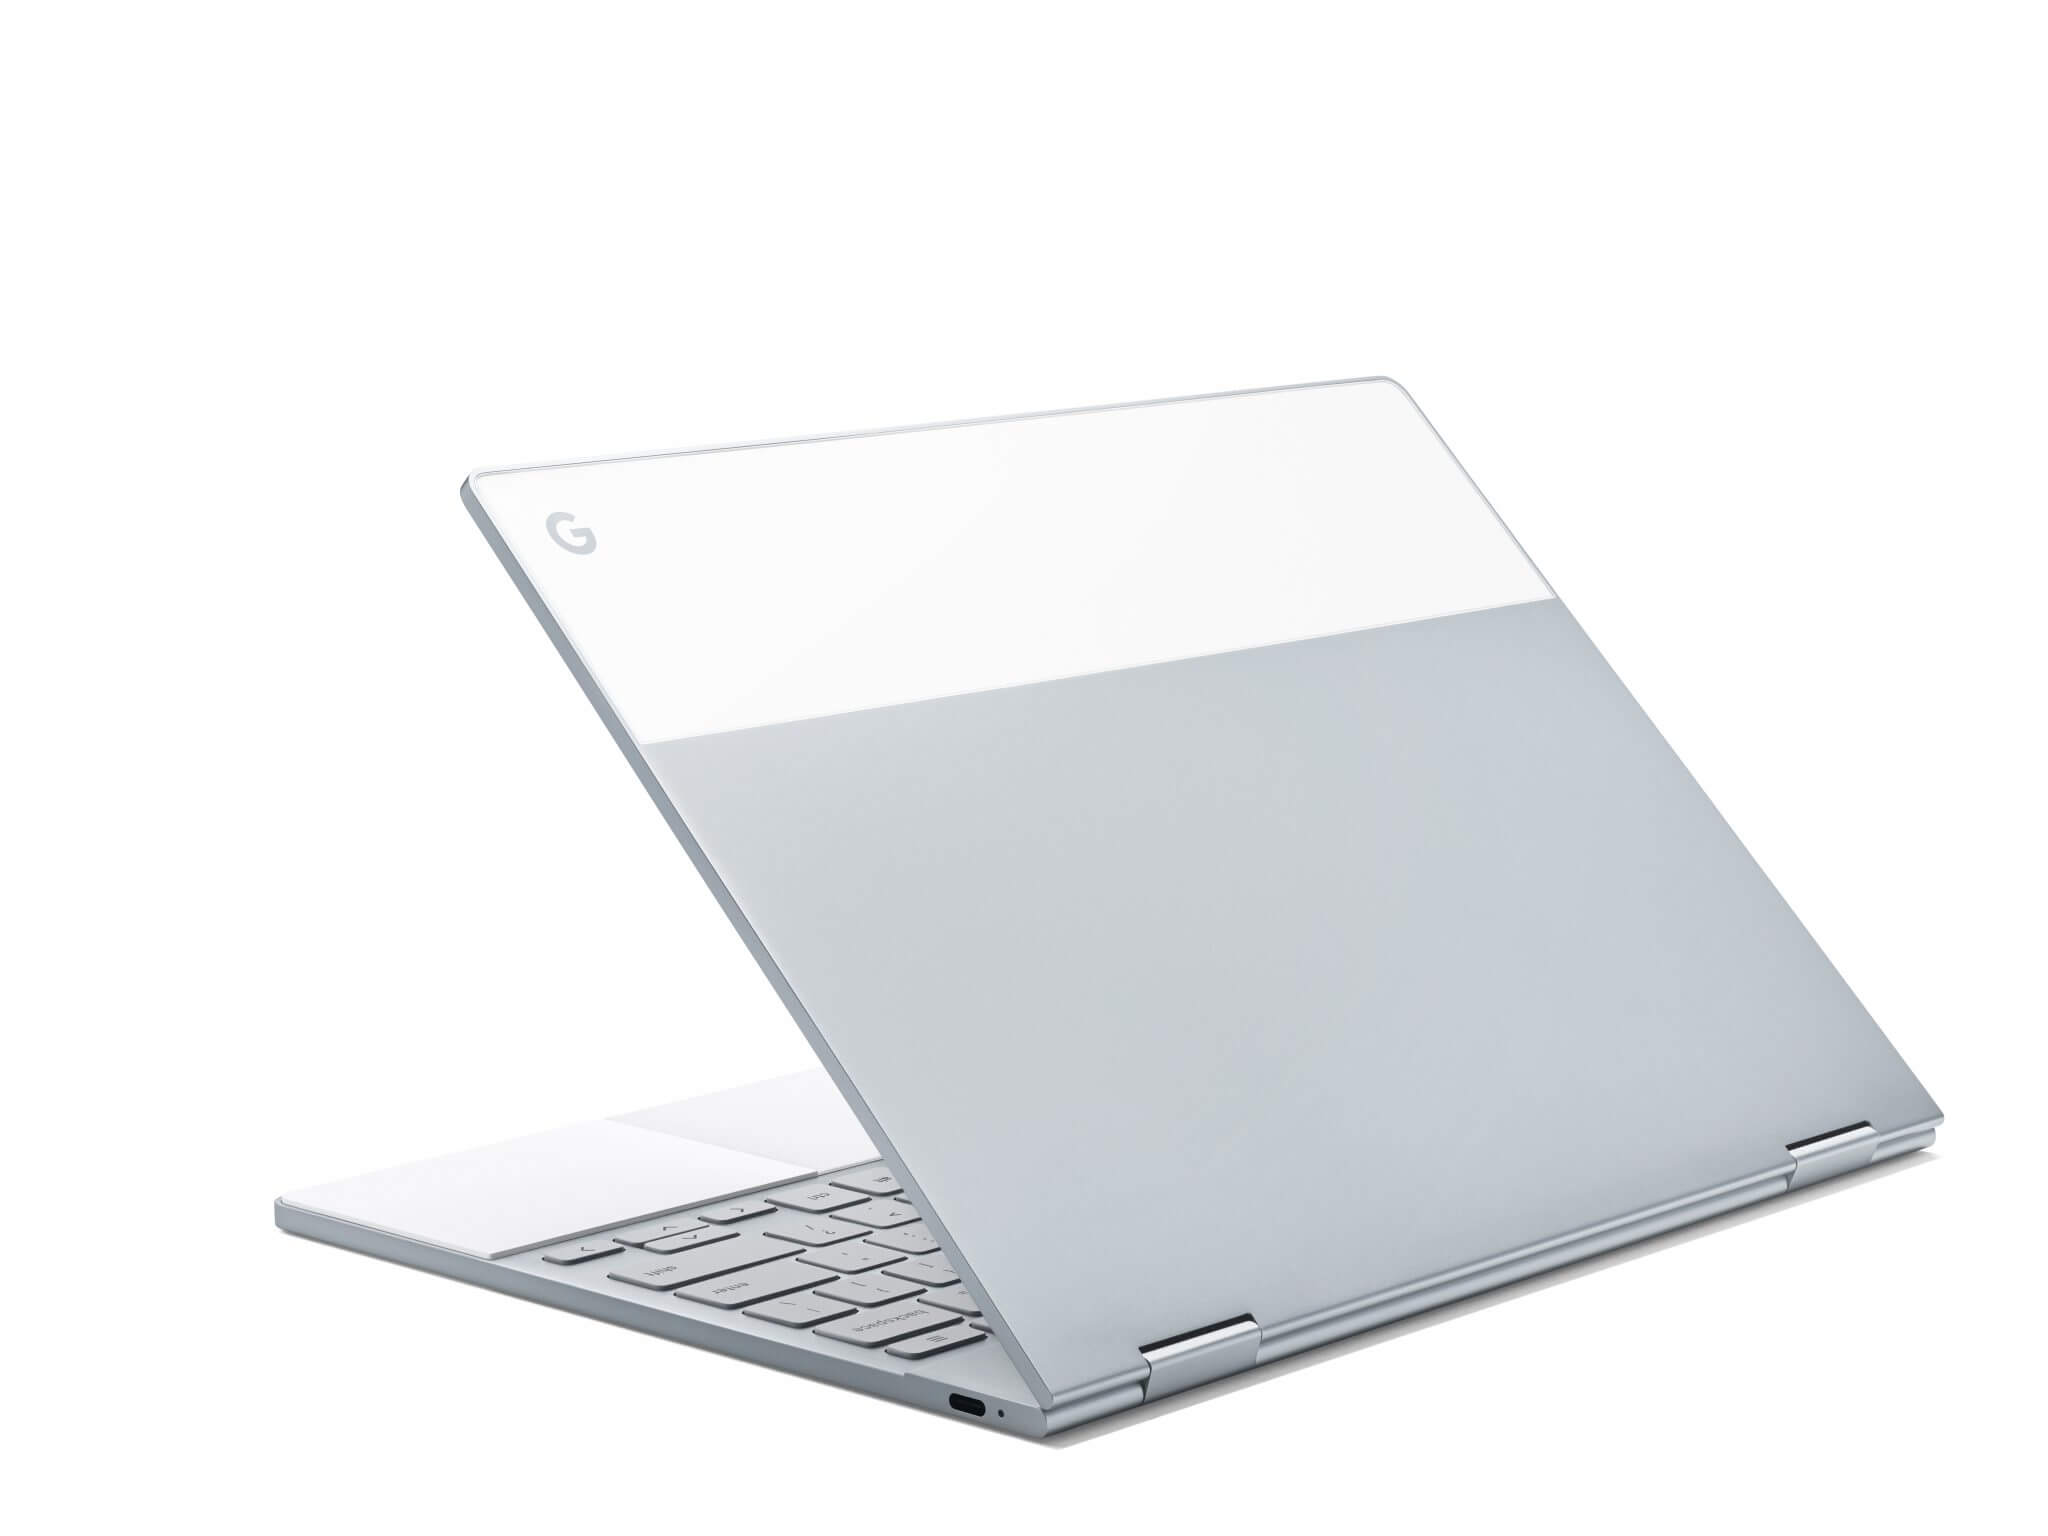 Pixelbook open